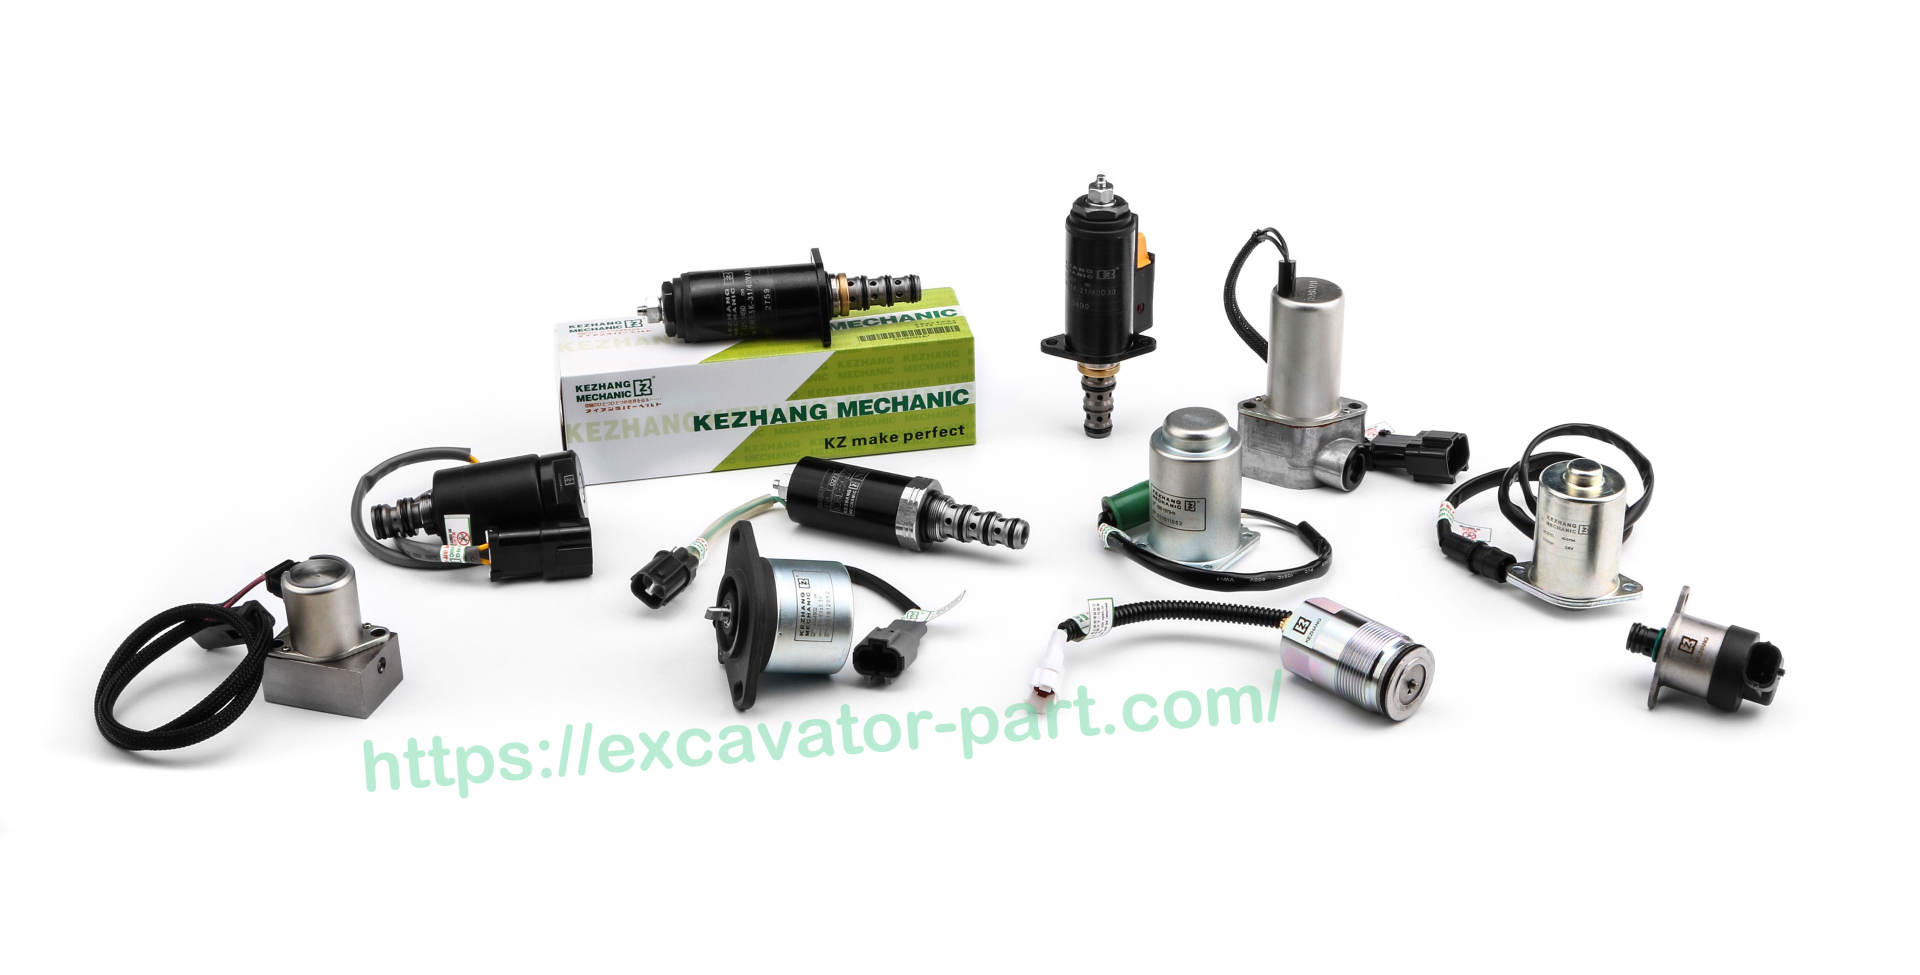 Top 4 solenoid valve manufacturers/suppliers in Cambodia kz cat 320 excavator